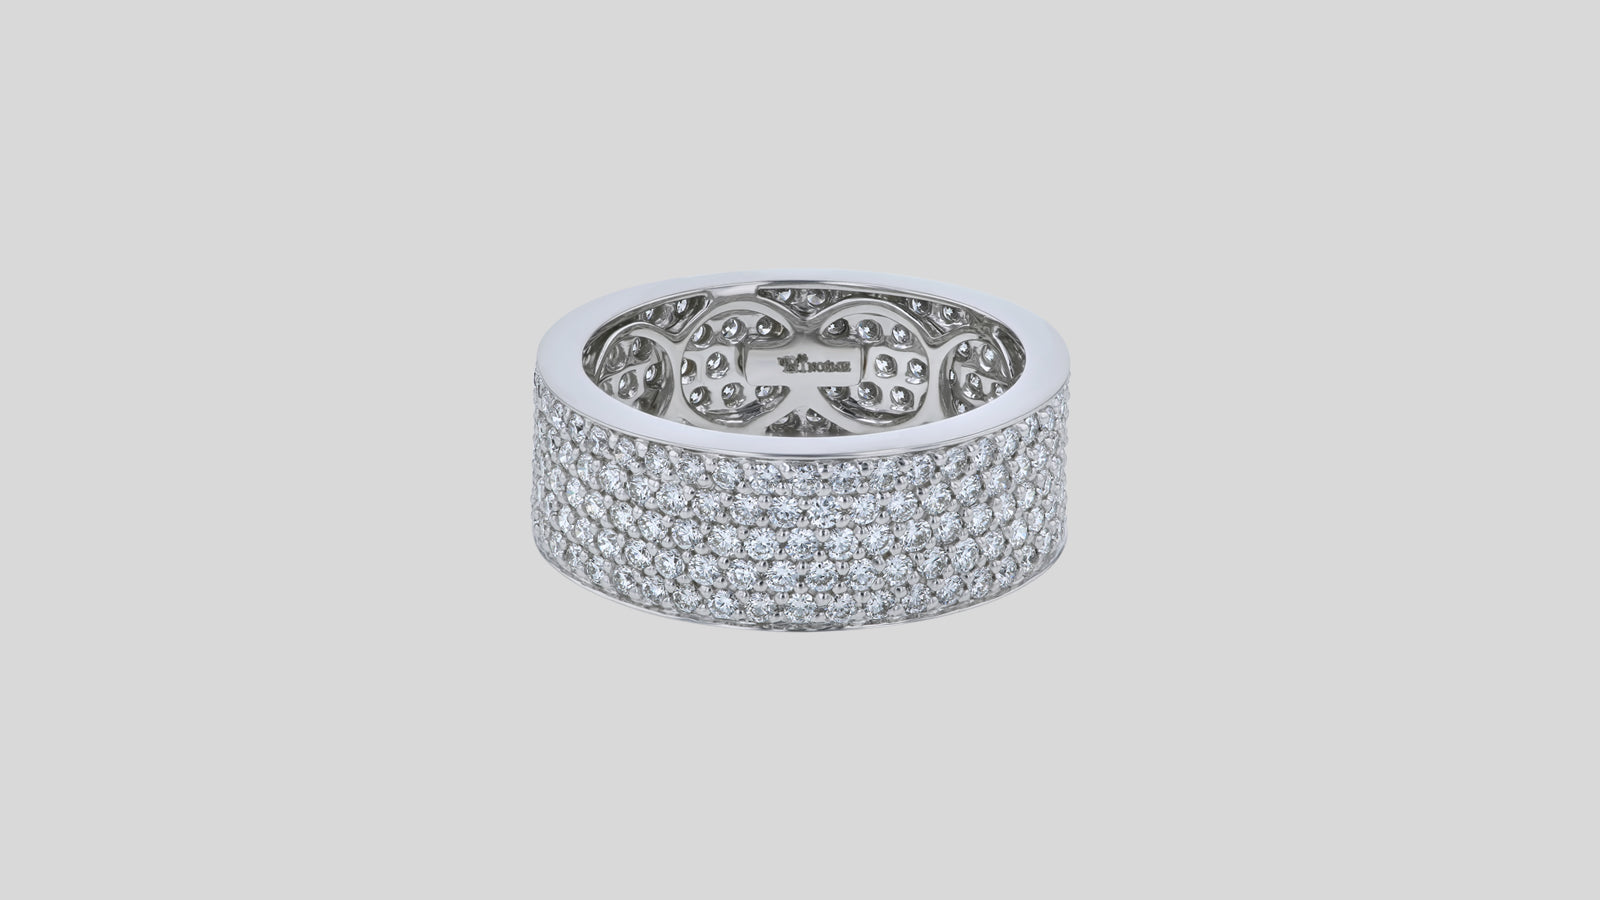 The 5-Row White Diamond Band